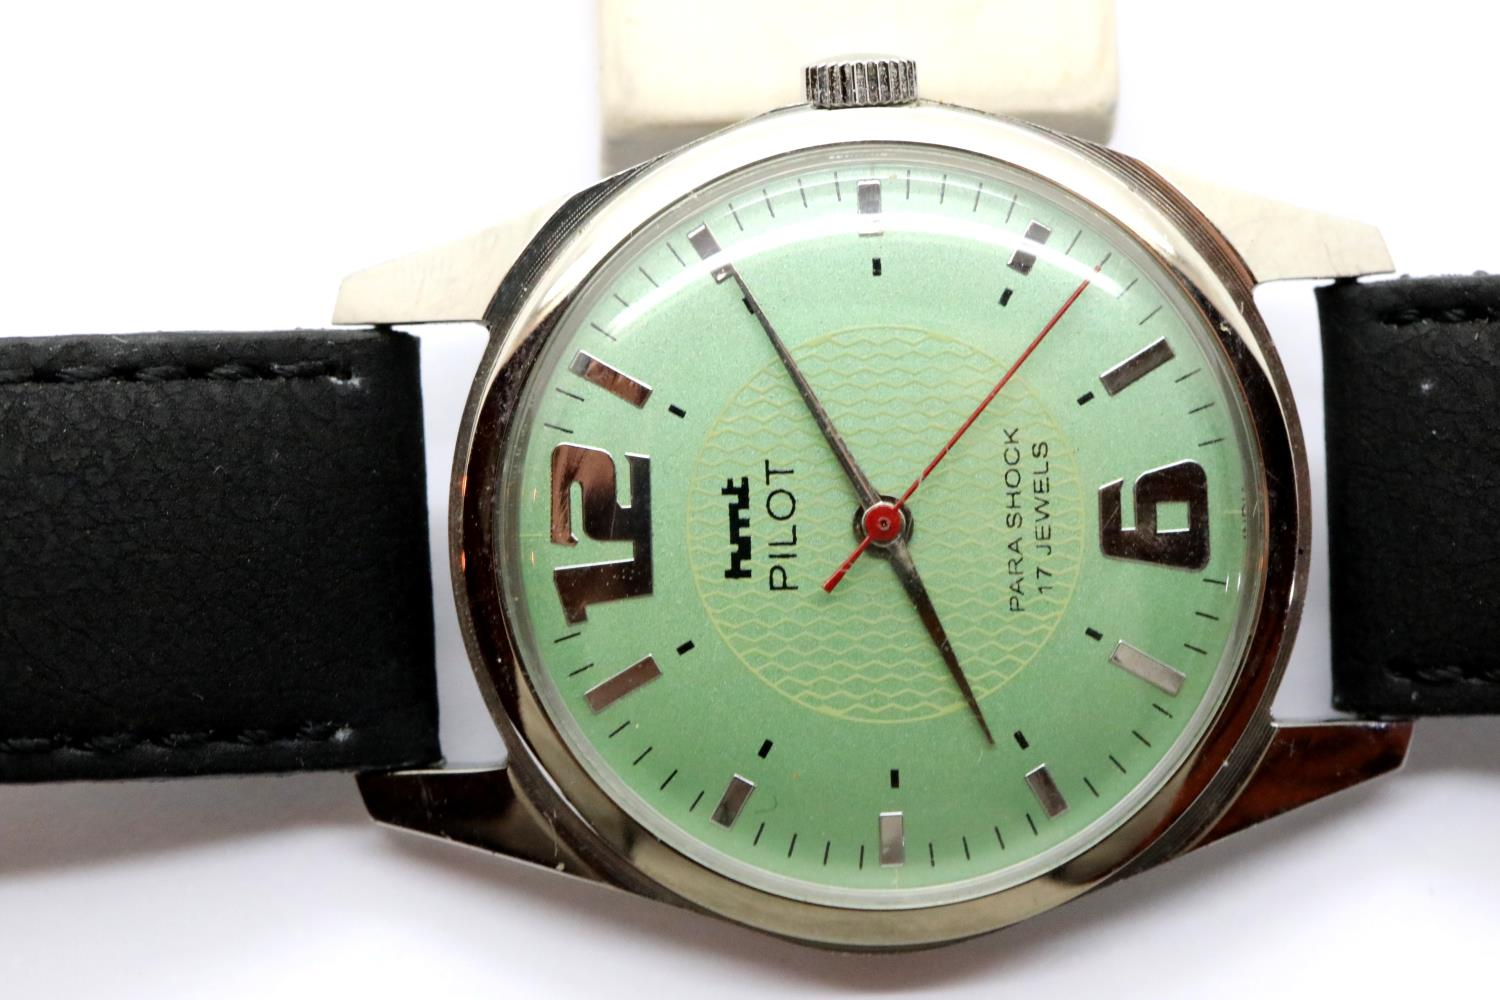 Vintage type HMT pilot mechanical wristwatch with sage green dial and black leather strap. Not